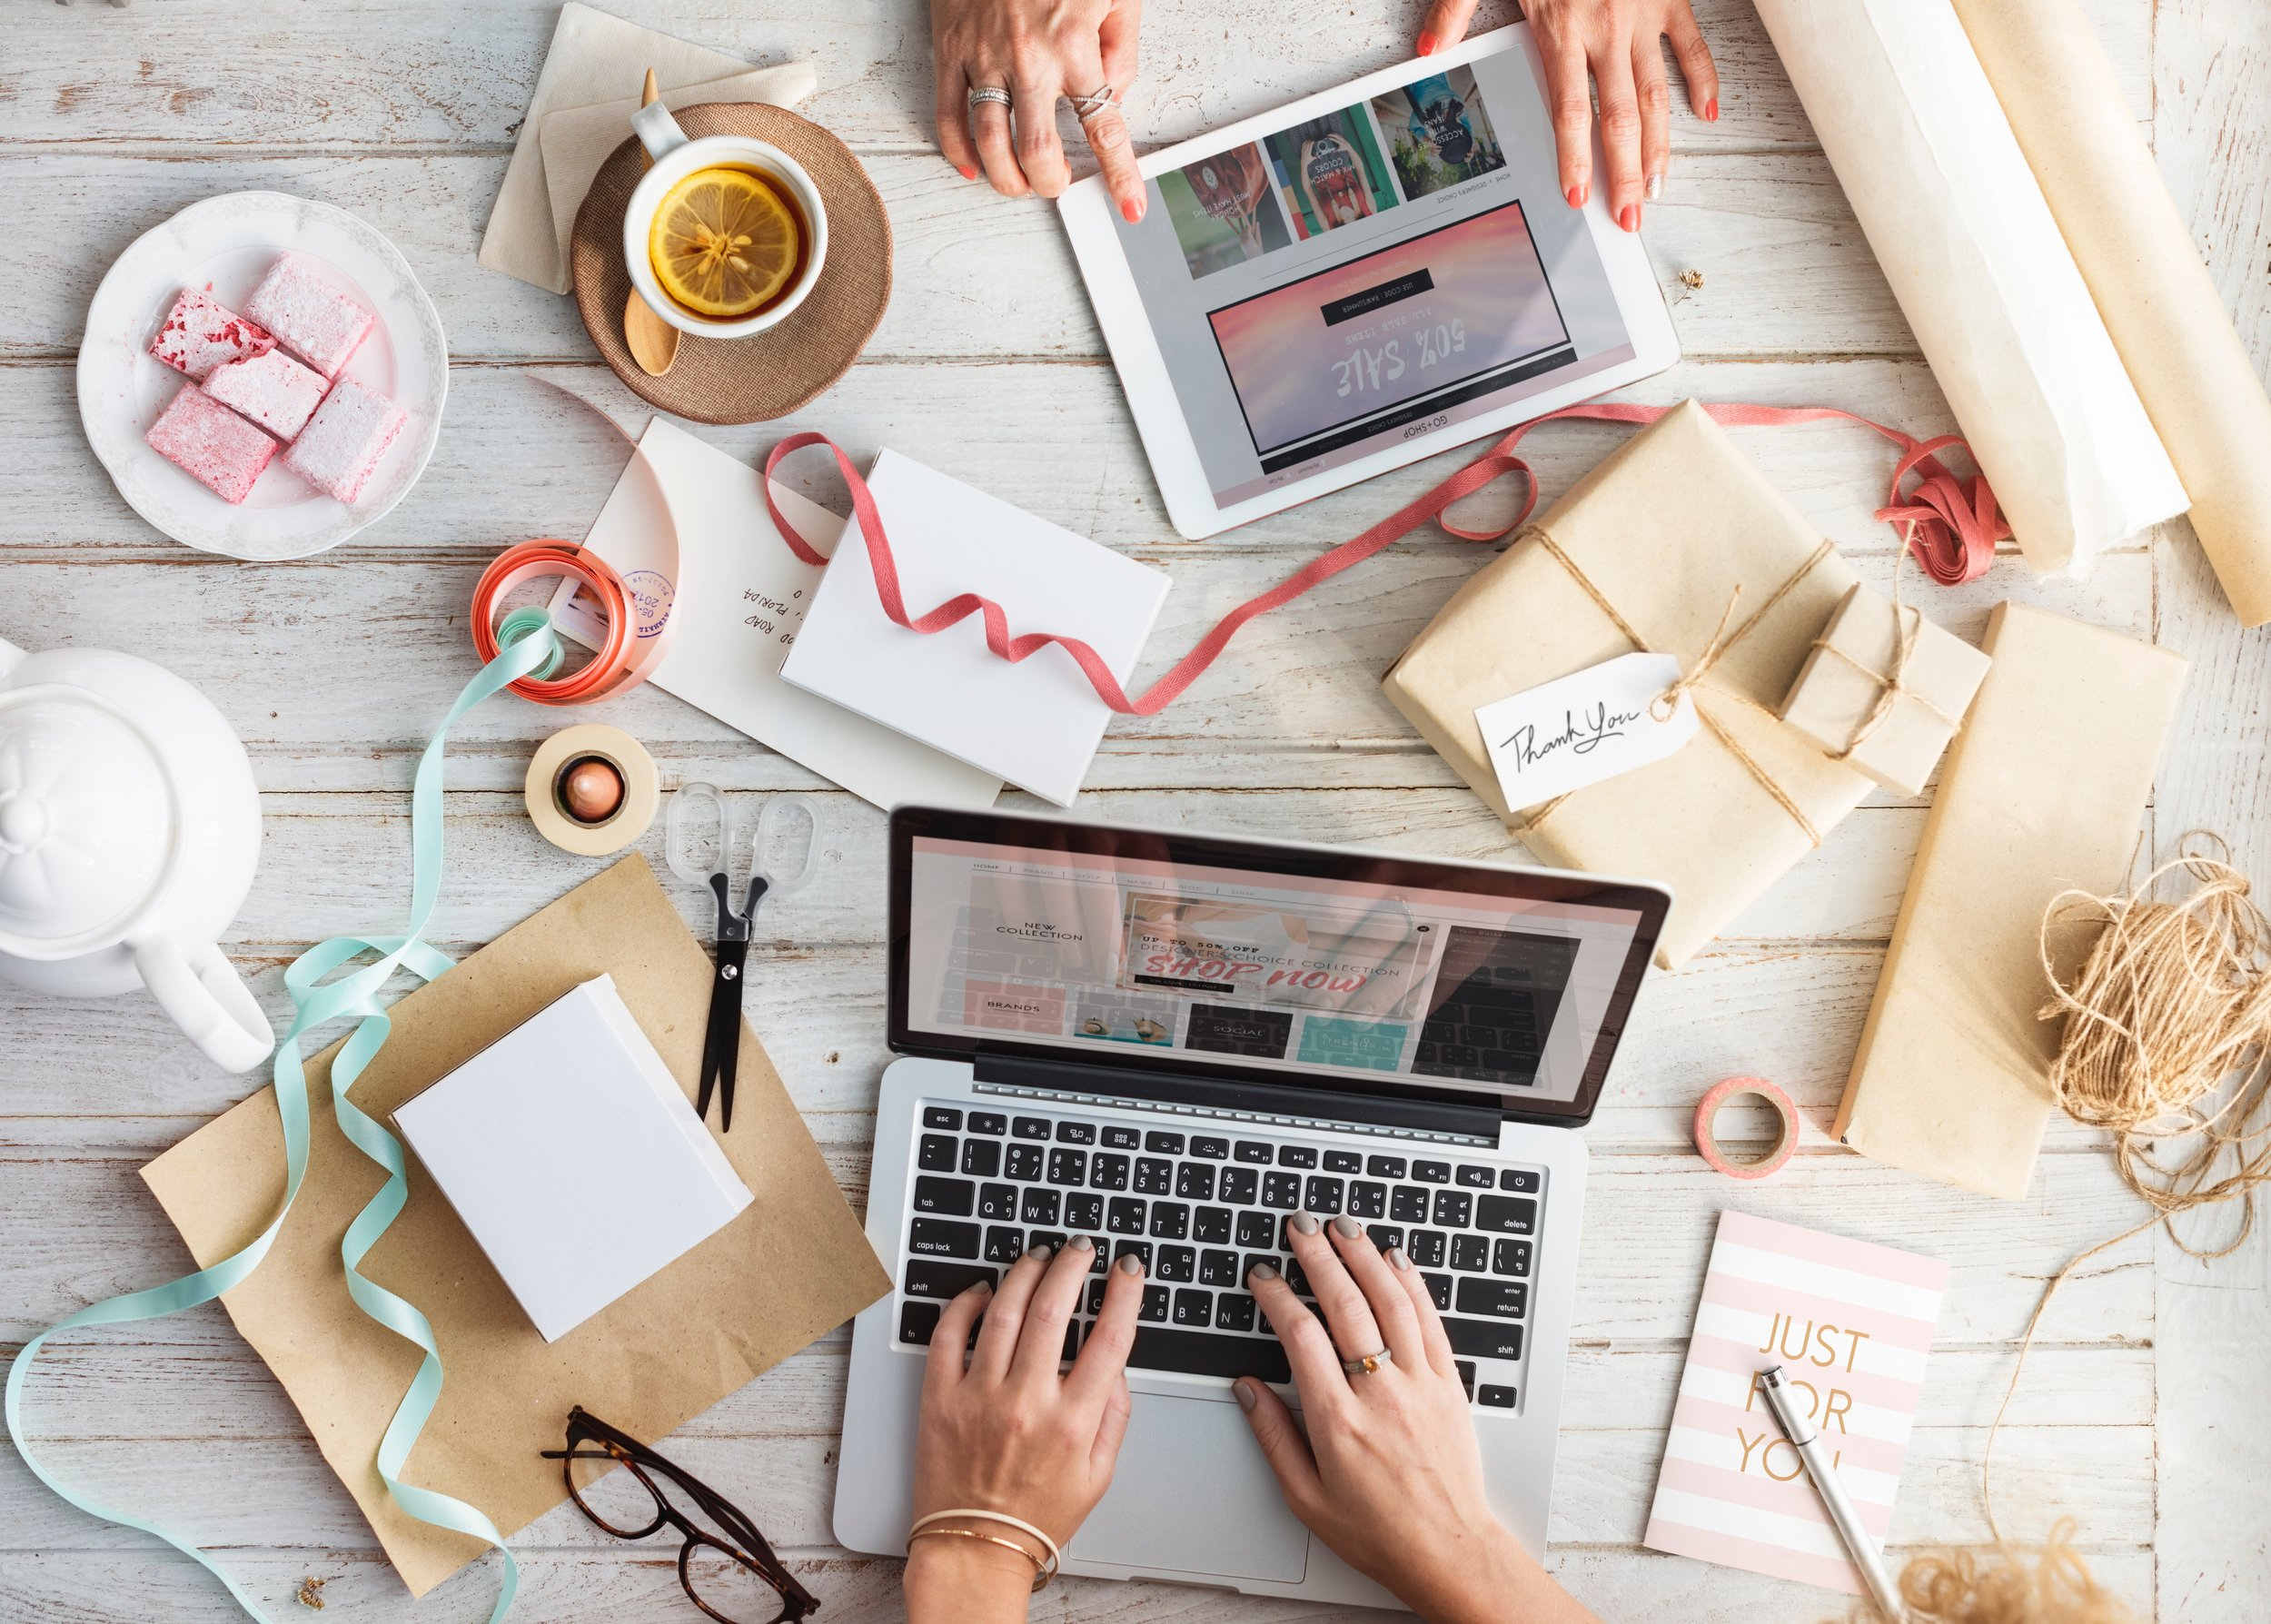 Blog Development - Picture blogging as single pieces of thread woven together to create beautiful tapestry. Each article represents a thread. They must work together to establish your business as a thought-leader in your niche. A strong content writer will carefully plan blog posts that paint a beautiful picture for your business.Photo by rawpixel.comon Unsplash